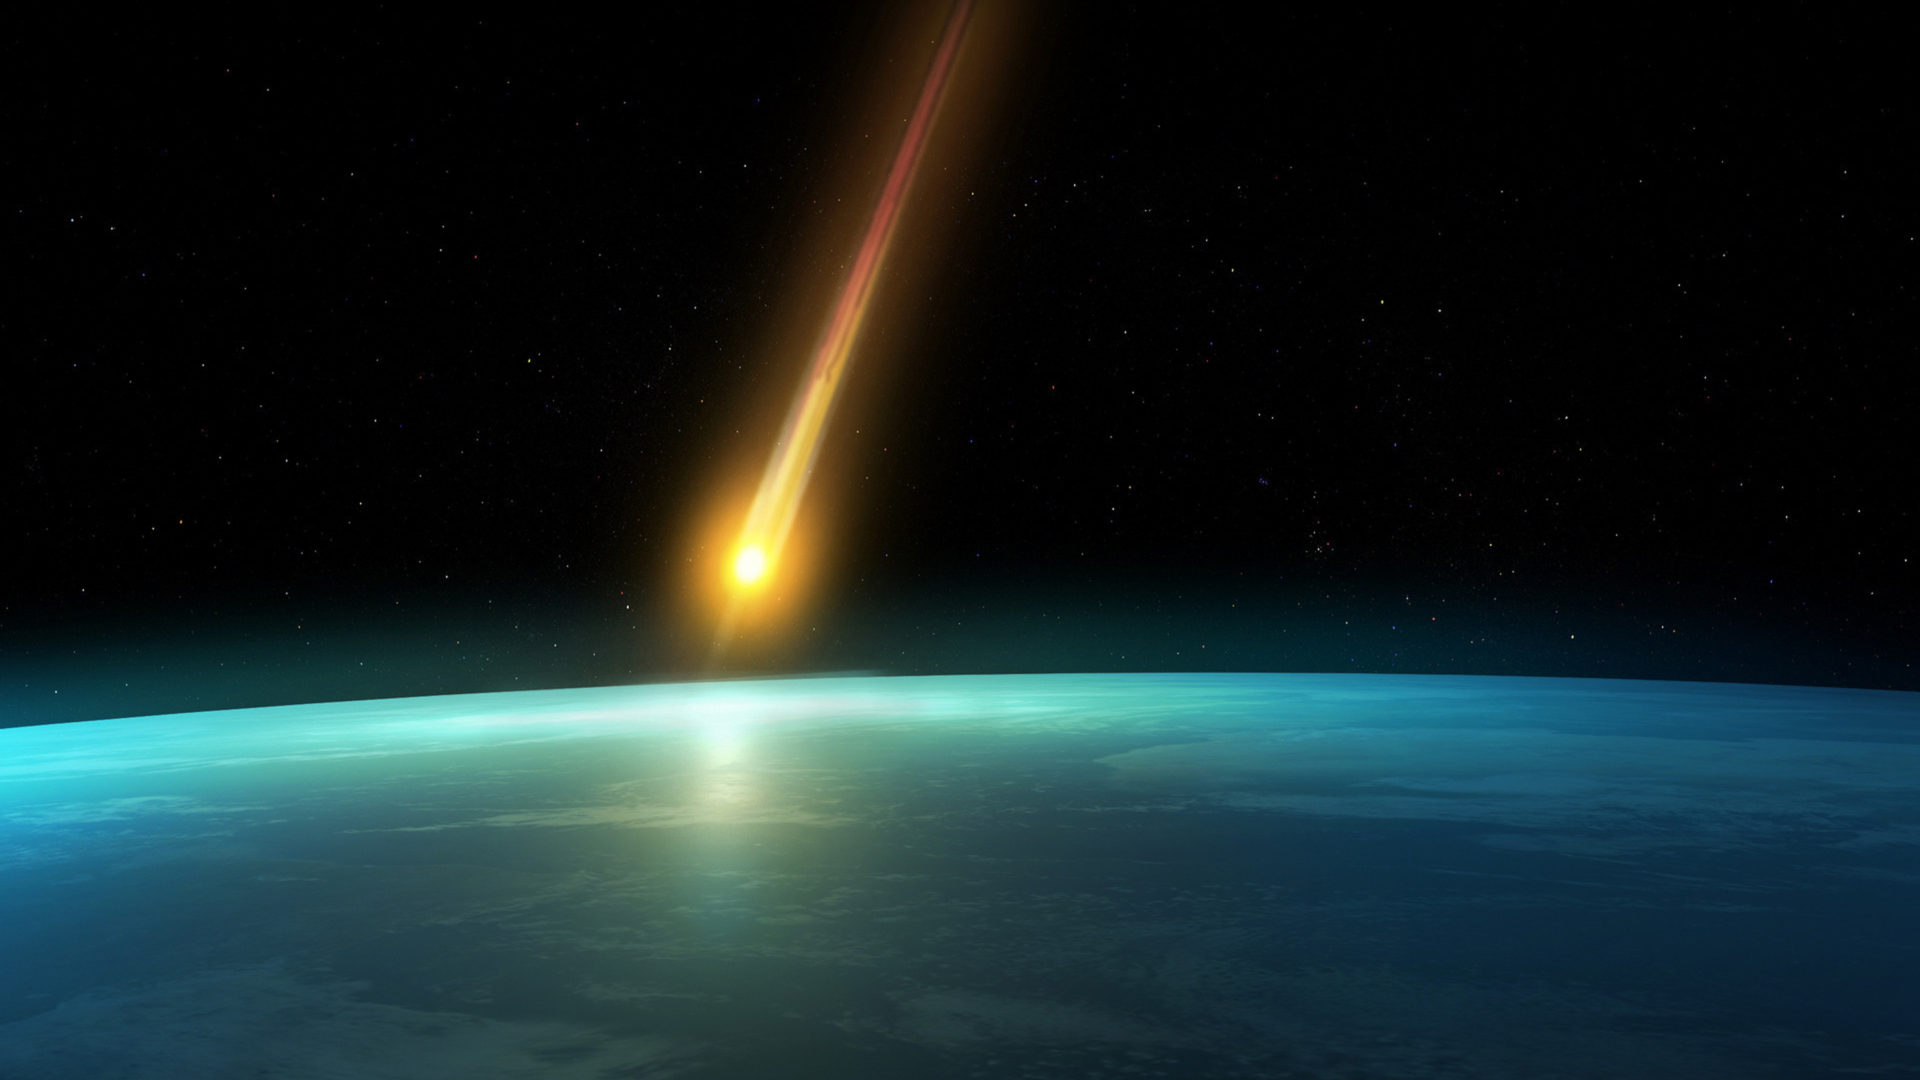 Wallpaper Falling Water Falling Comet In The Earth S Atmosphere Background Hd